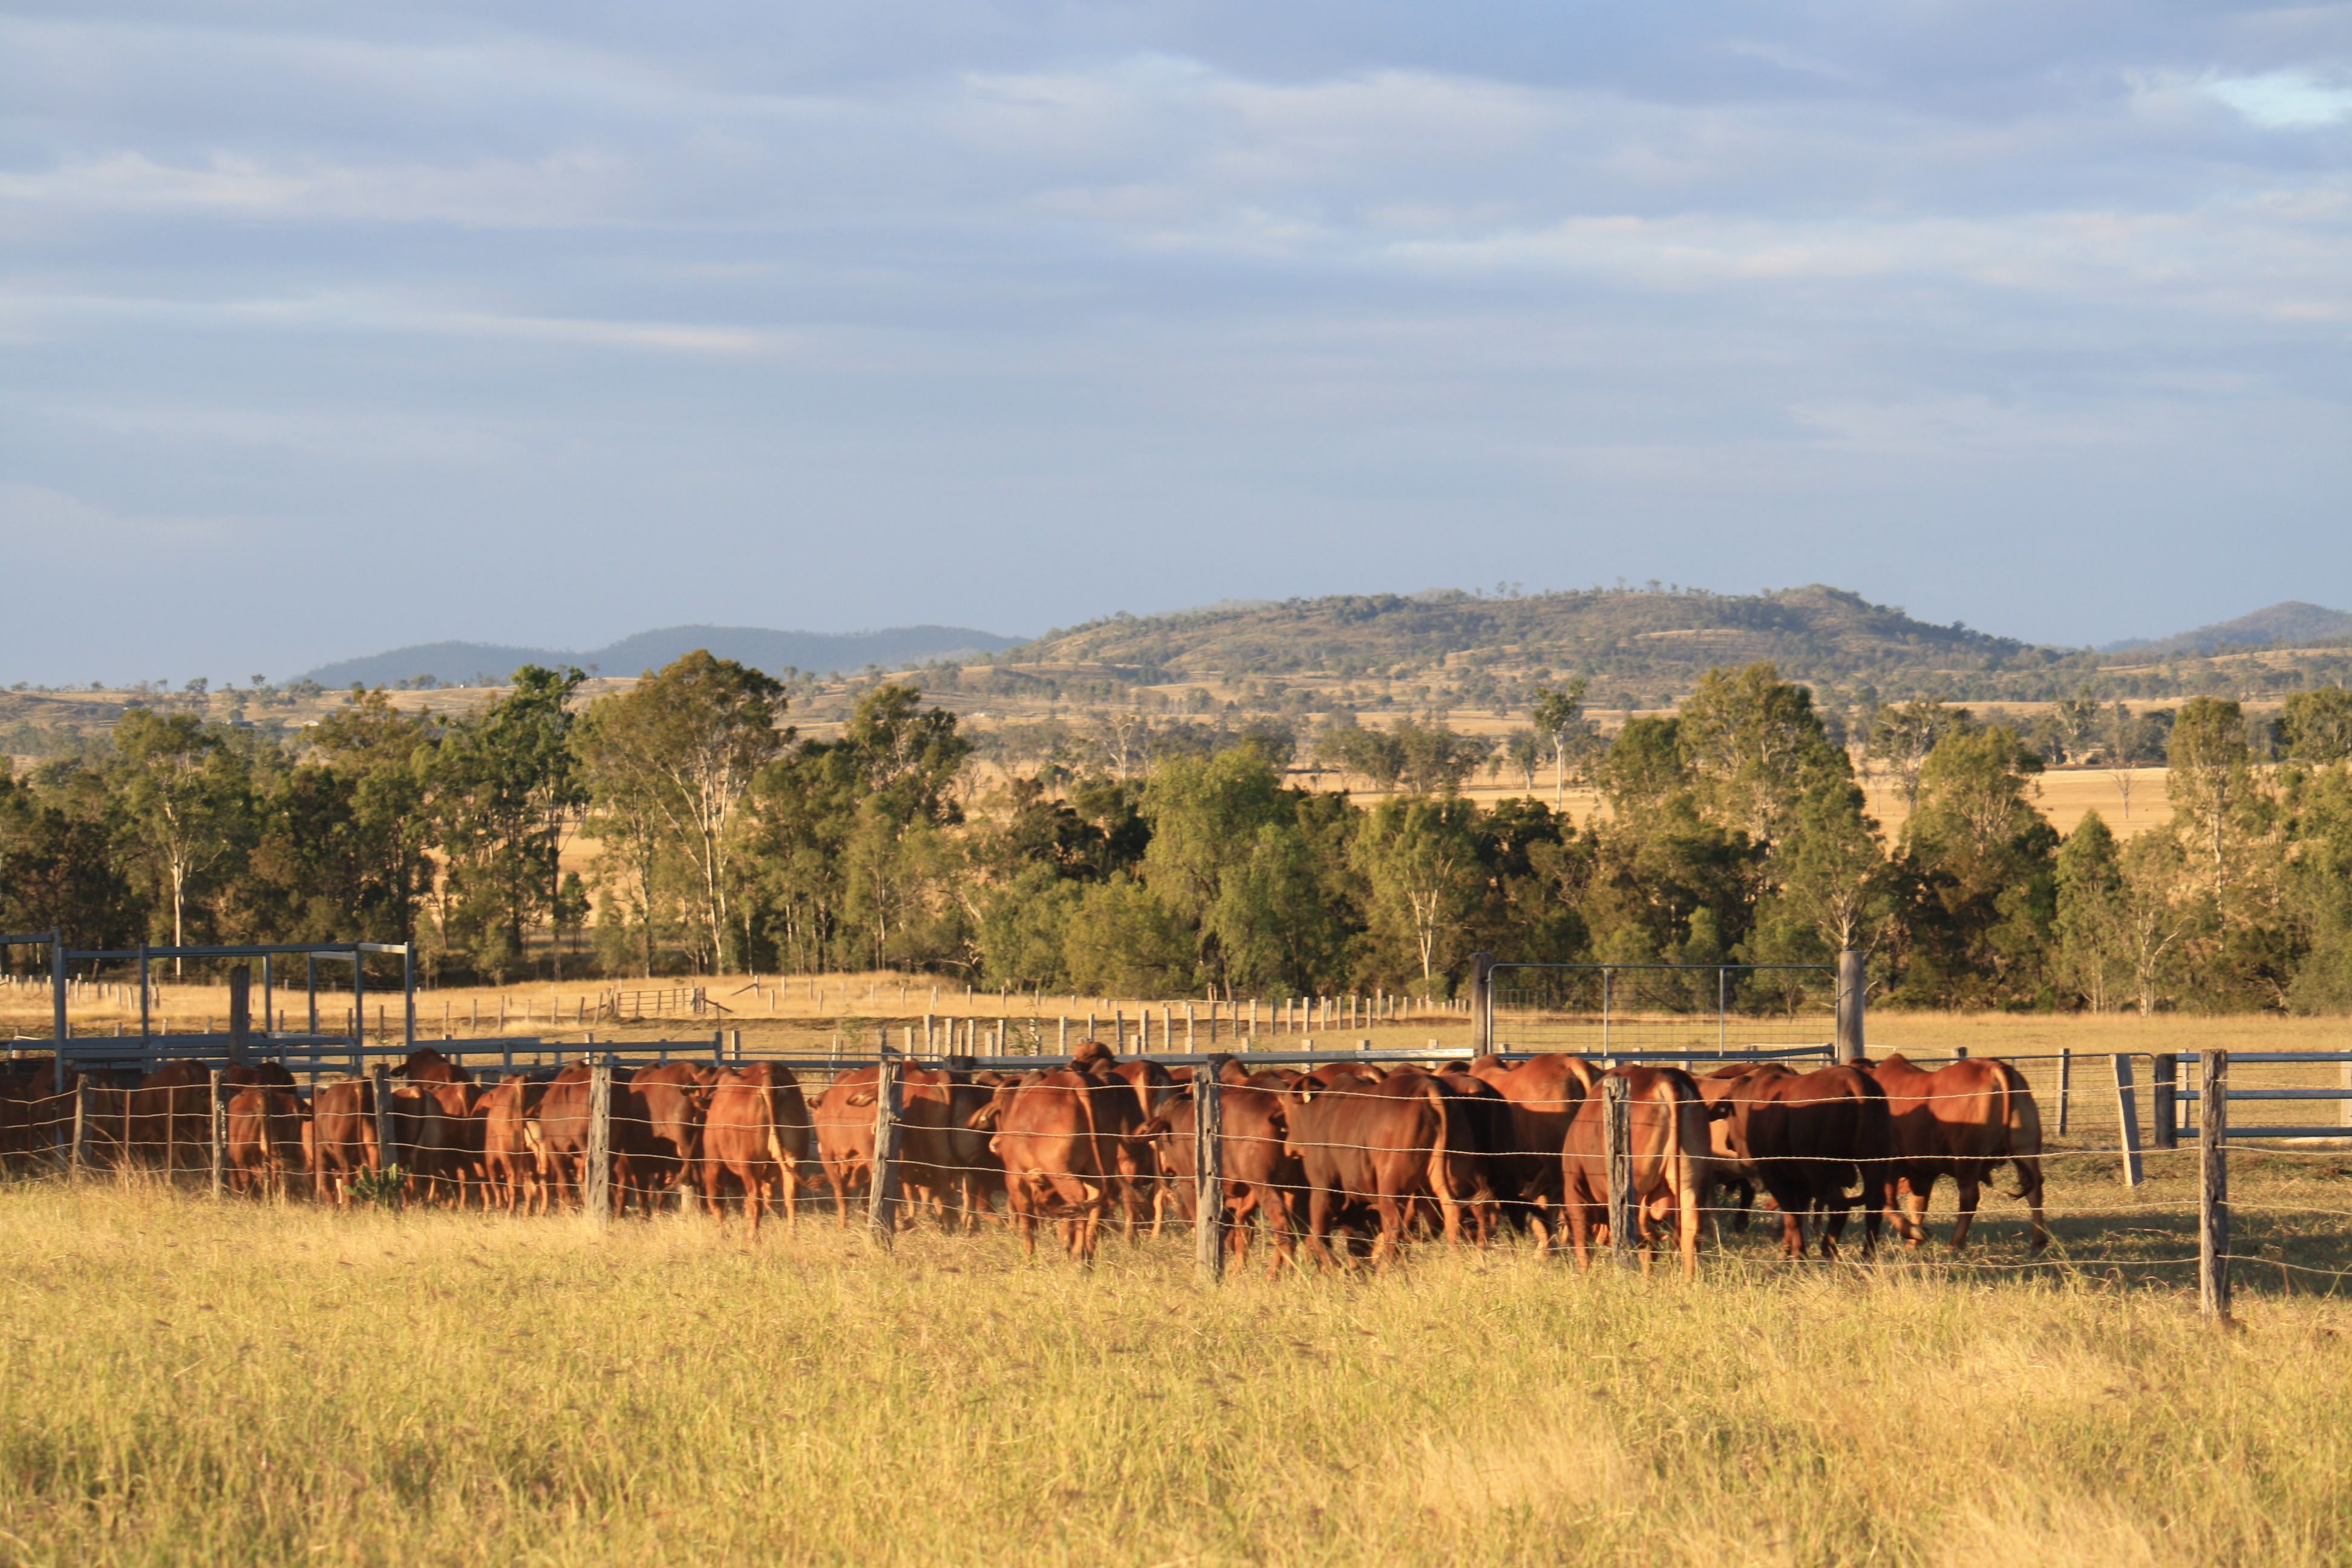 Bulls for Sale being yarded at Wajatryn 2013